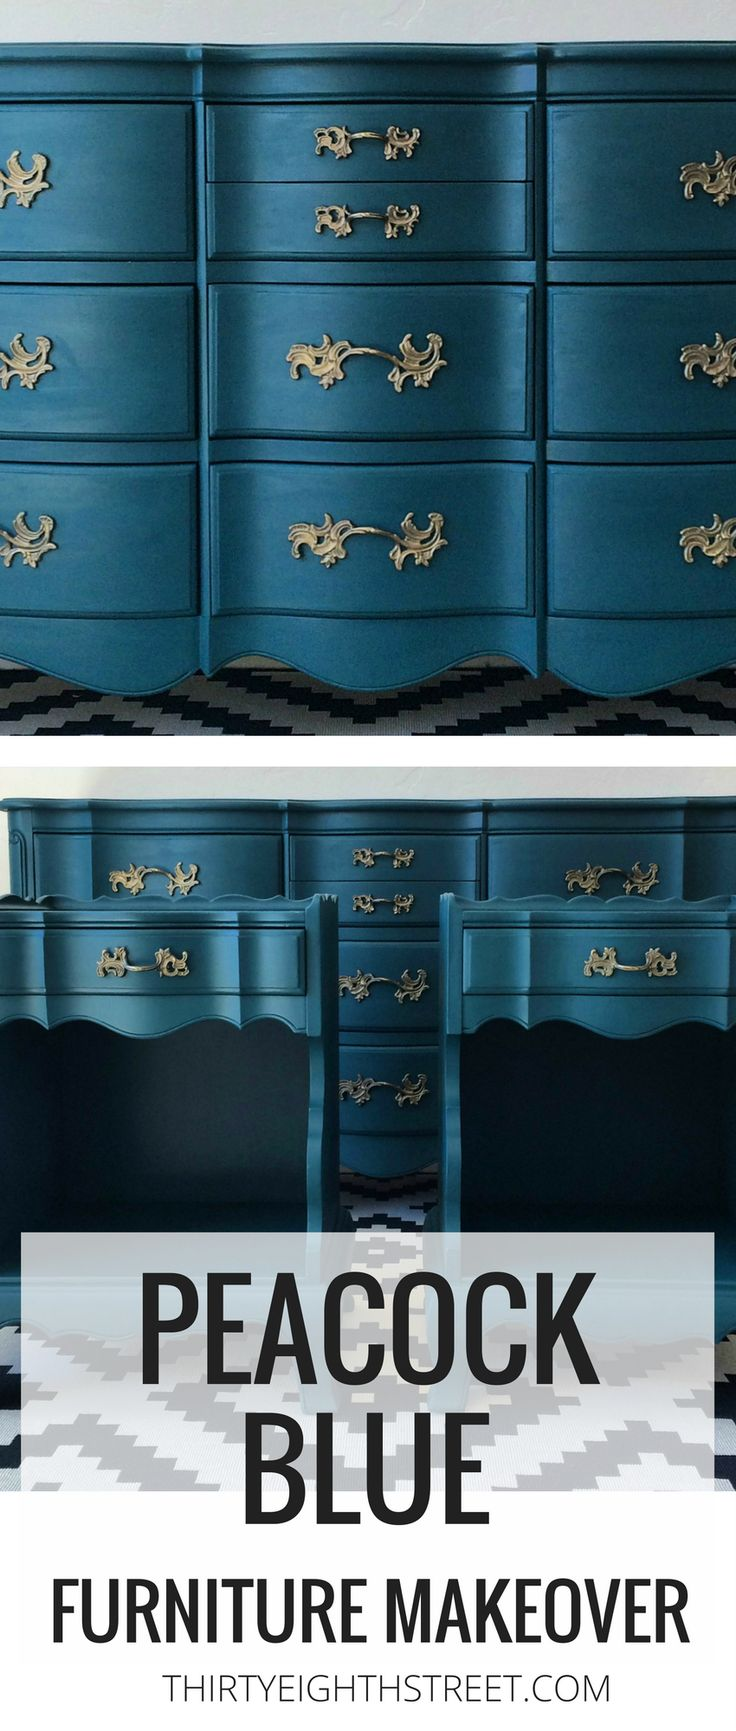 Blue Painted Furniture Ideas! Peacock Blue Chalk Painted Bedroom Furniture. Furniture Makeover Before And Afters. DIY Furniture Tutorials and Painted Furniture Inspiration! #peacock #bluefurniture #bedroomfurniture #paintedfurniture